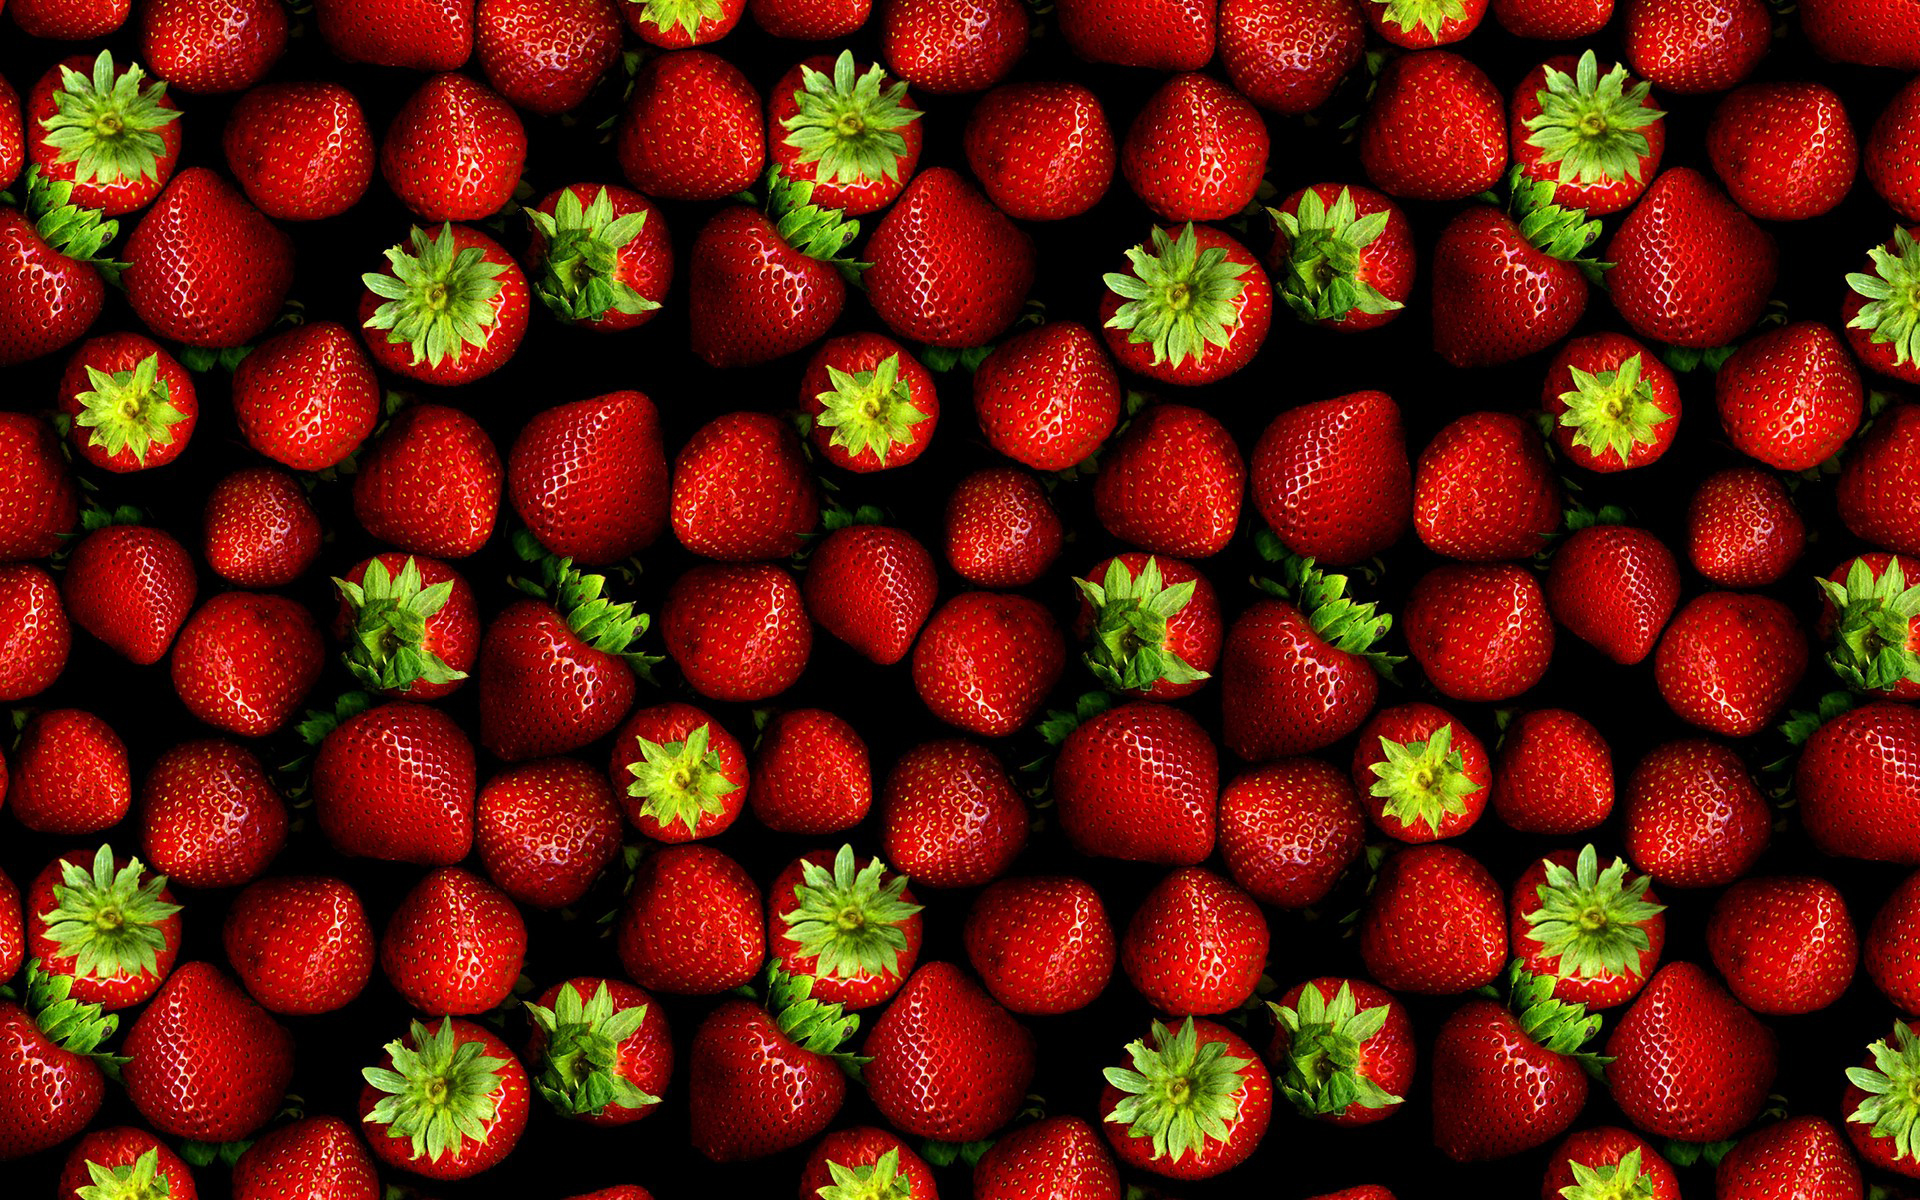 Download Hd Wallpaper Of Strawberry Juice: Strawberry Wallpapers For Desktop